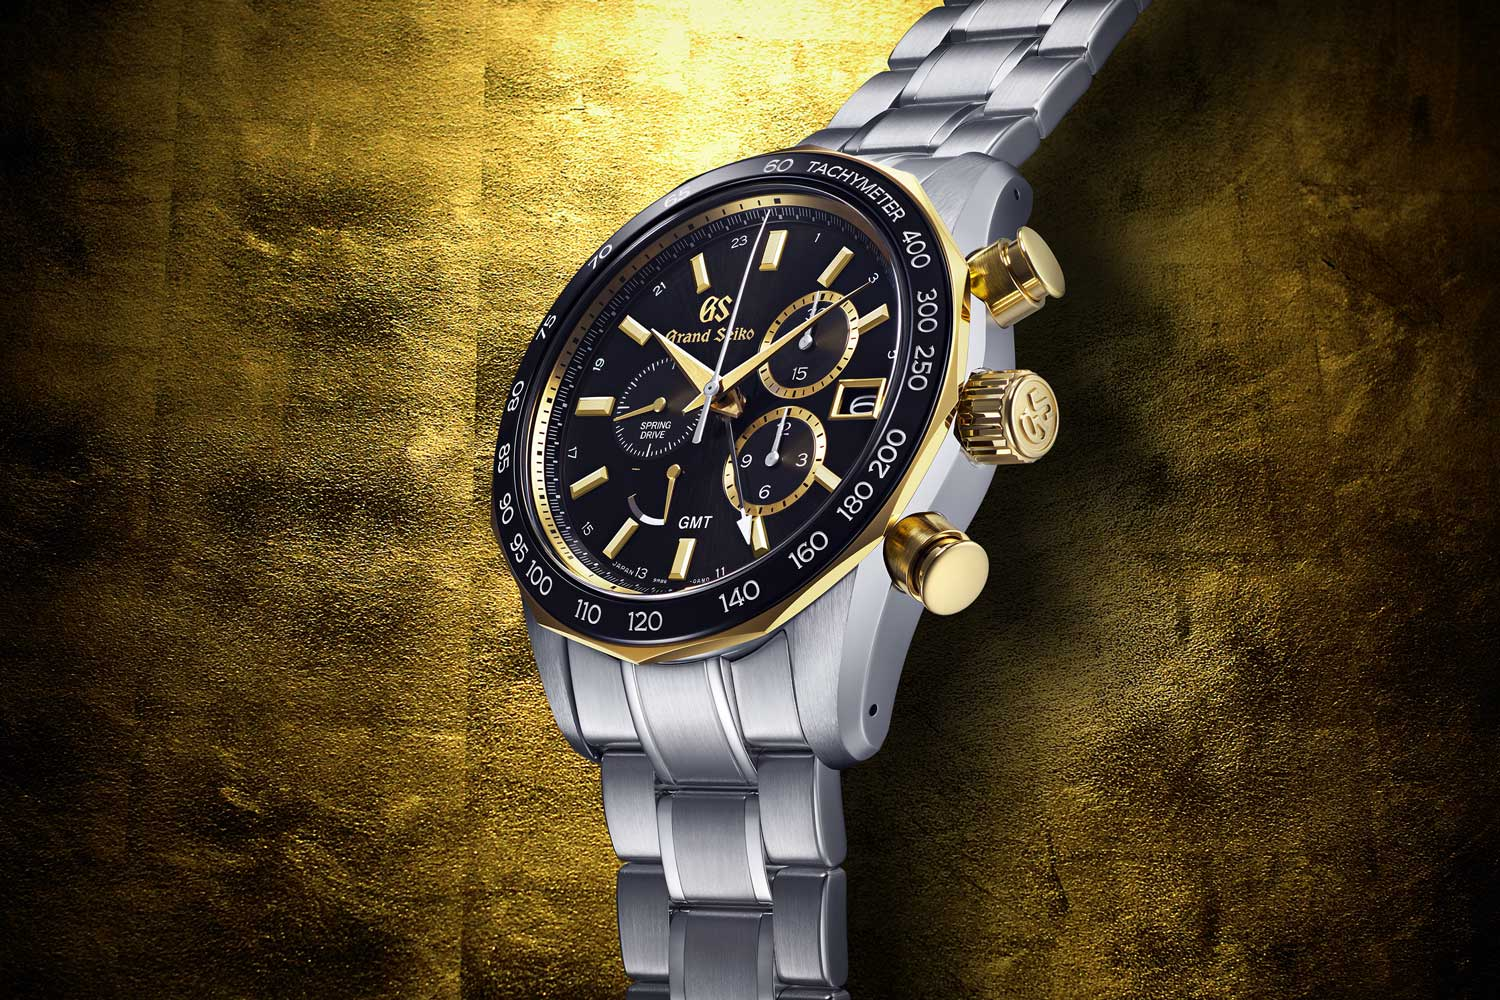 The Grand Seiko Sports Collection Spring Drive Chronograph GMT: SBGC240 Seiko 140th Anniversary Limited Edition of 500 pieces